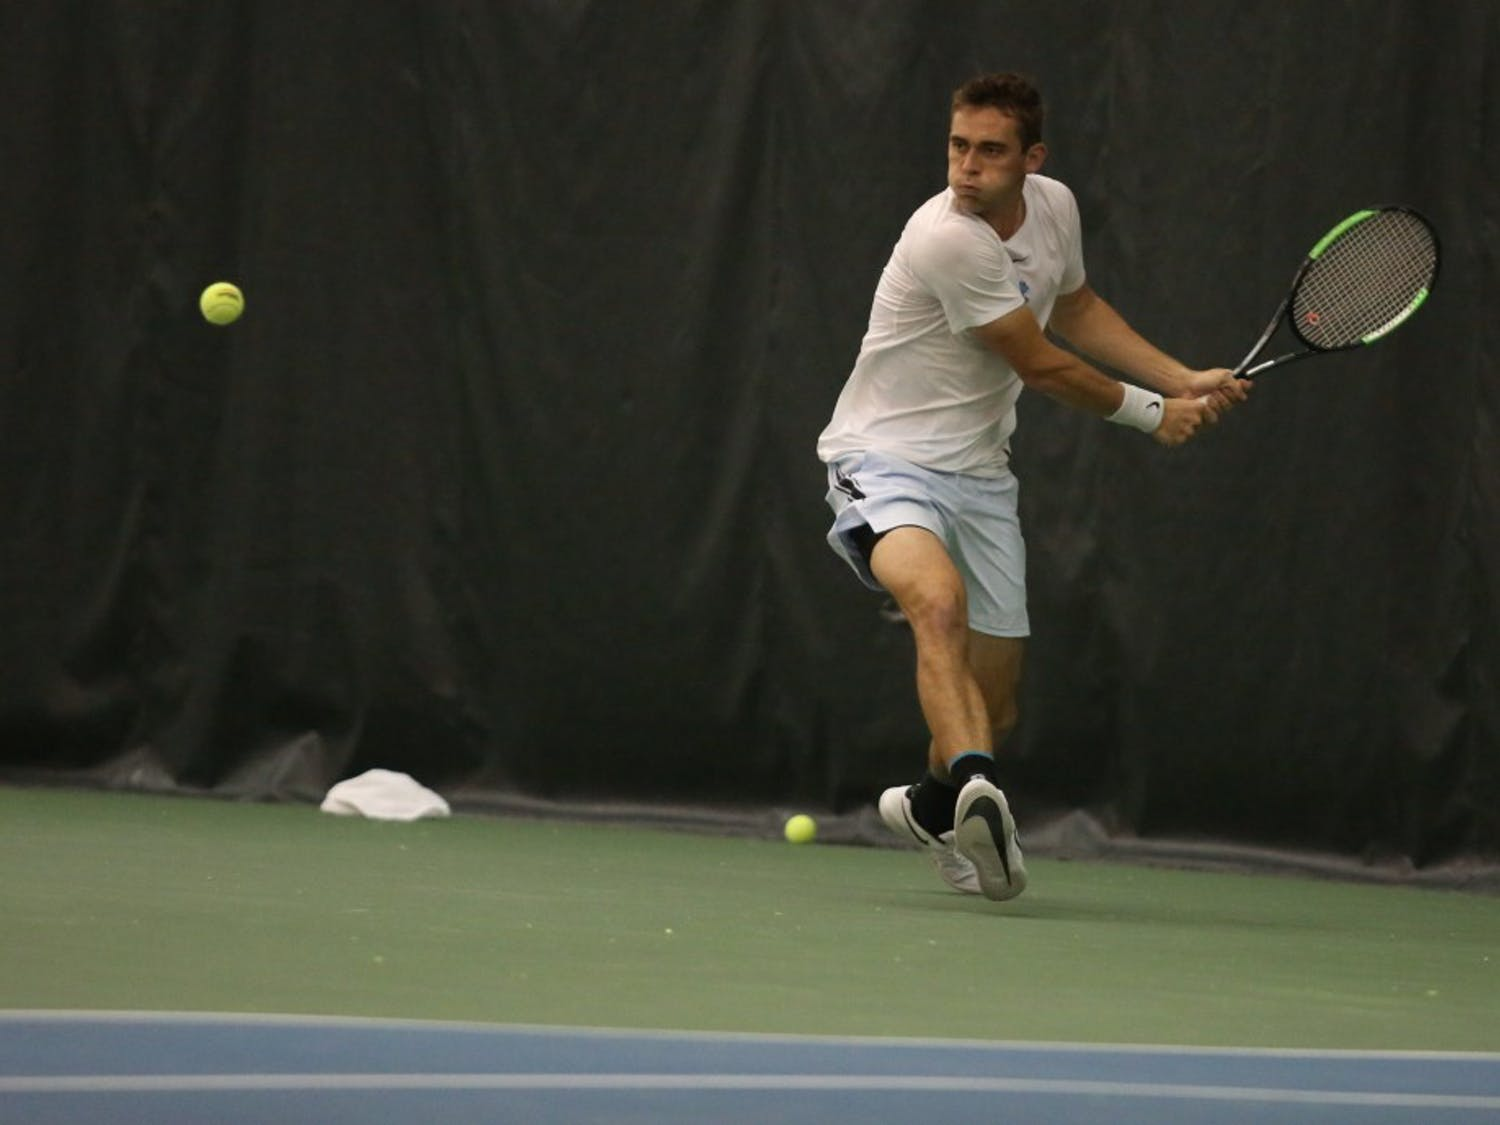 UNC men's tennis sophomore Benjamin Sigouin returns the ball against Boston College's Derek Austin during a singles match on Friday April 5, 2019. UNC defeated Boston College 5-1.